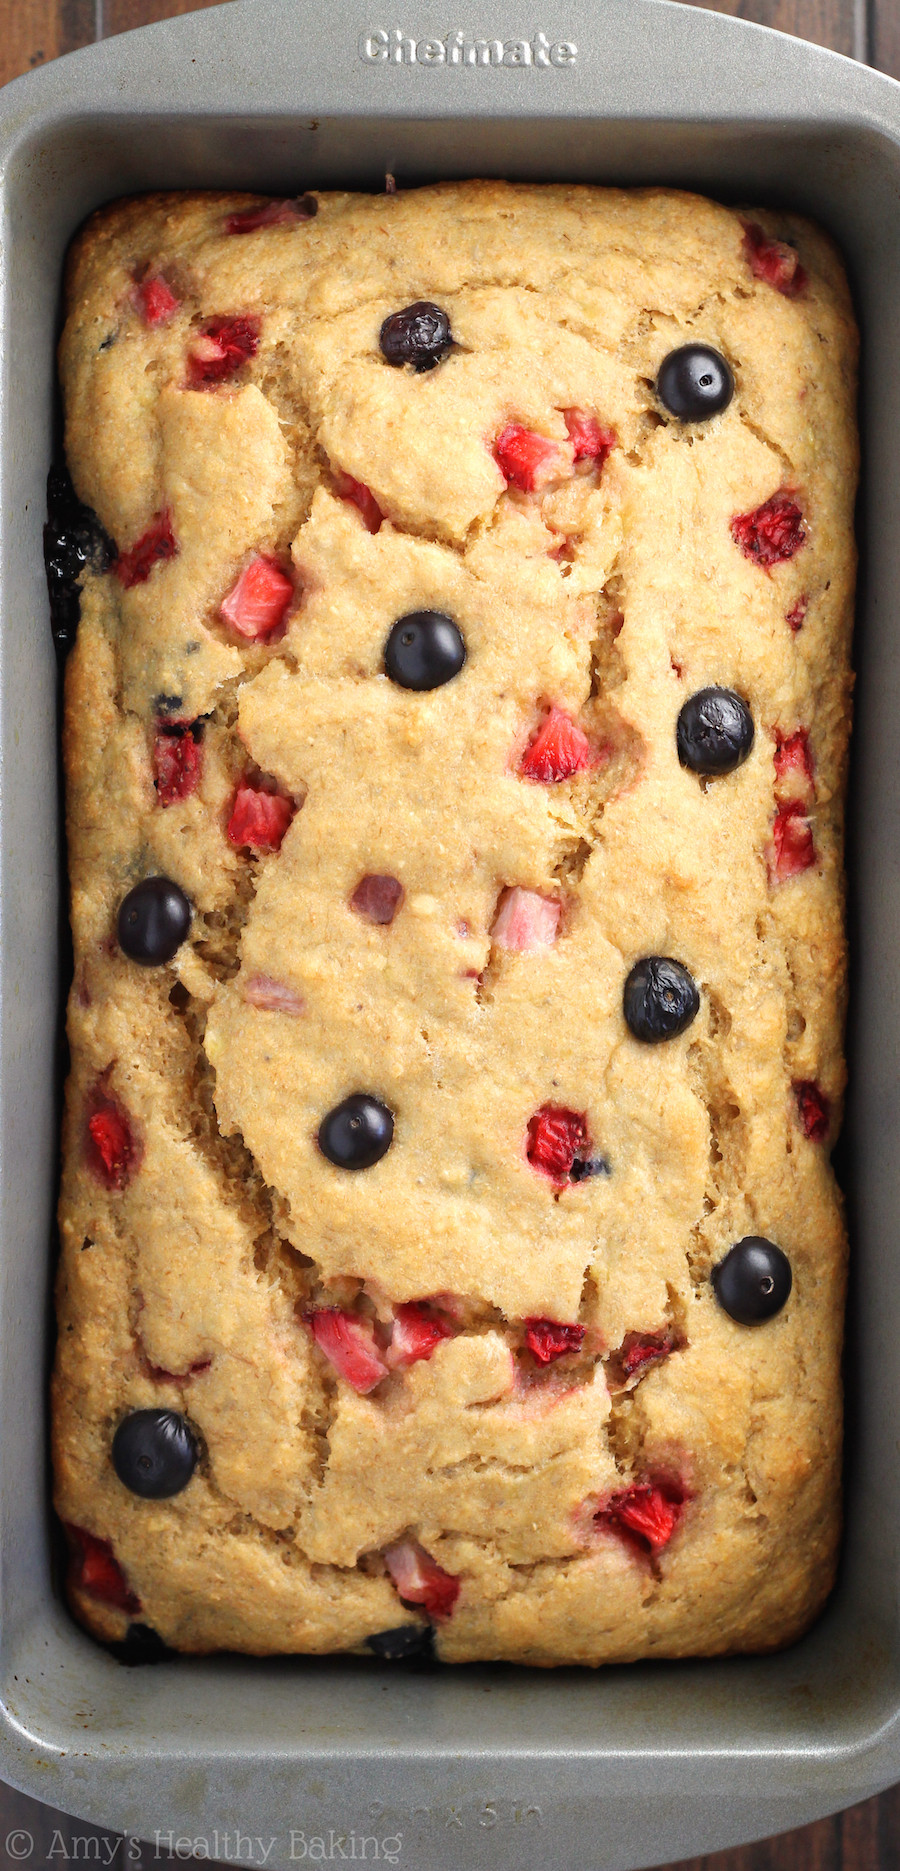 Healthy Breakfast Baking Recipes  Healthy 4th of July Desserts Eating Richly